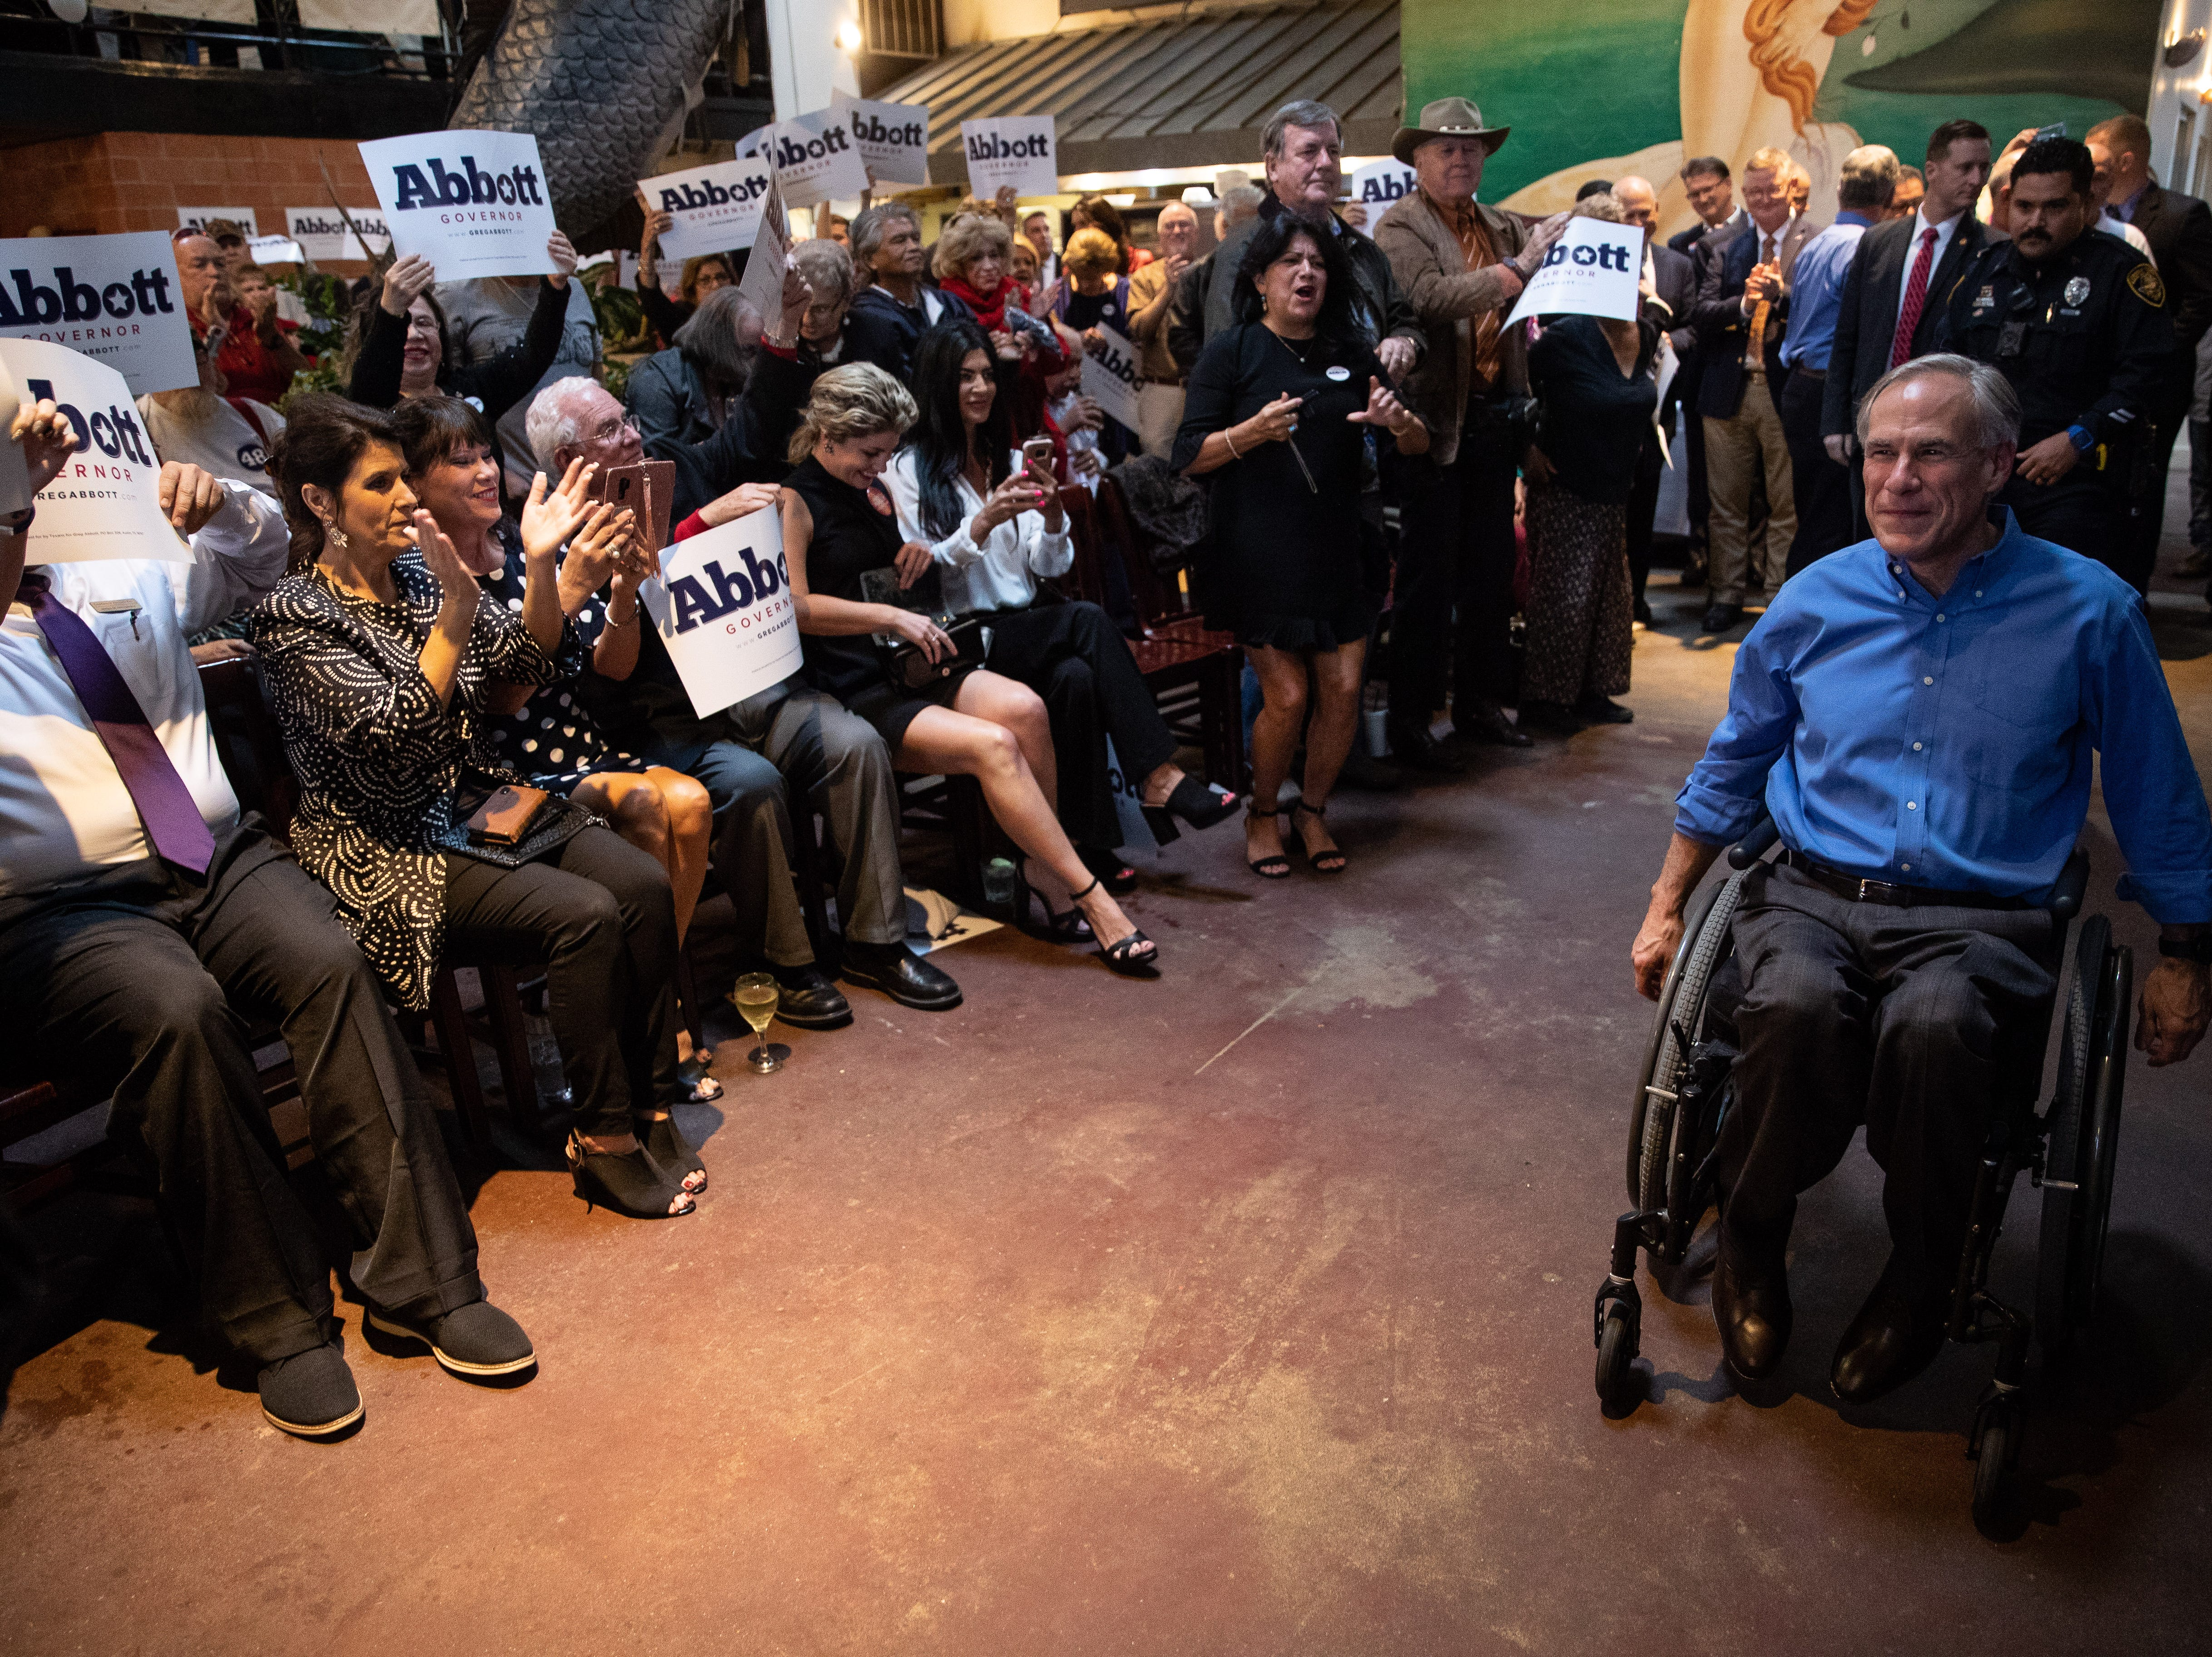 Texas Gov. Greg Abbott arrives at a Get Out the Vote stop in Corpus Christi at Water Street Oyster Bar on Thursday, Oct. 25, 2018.